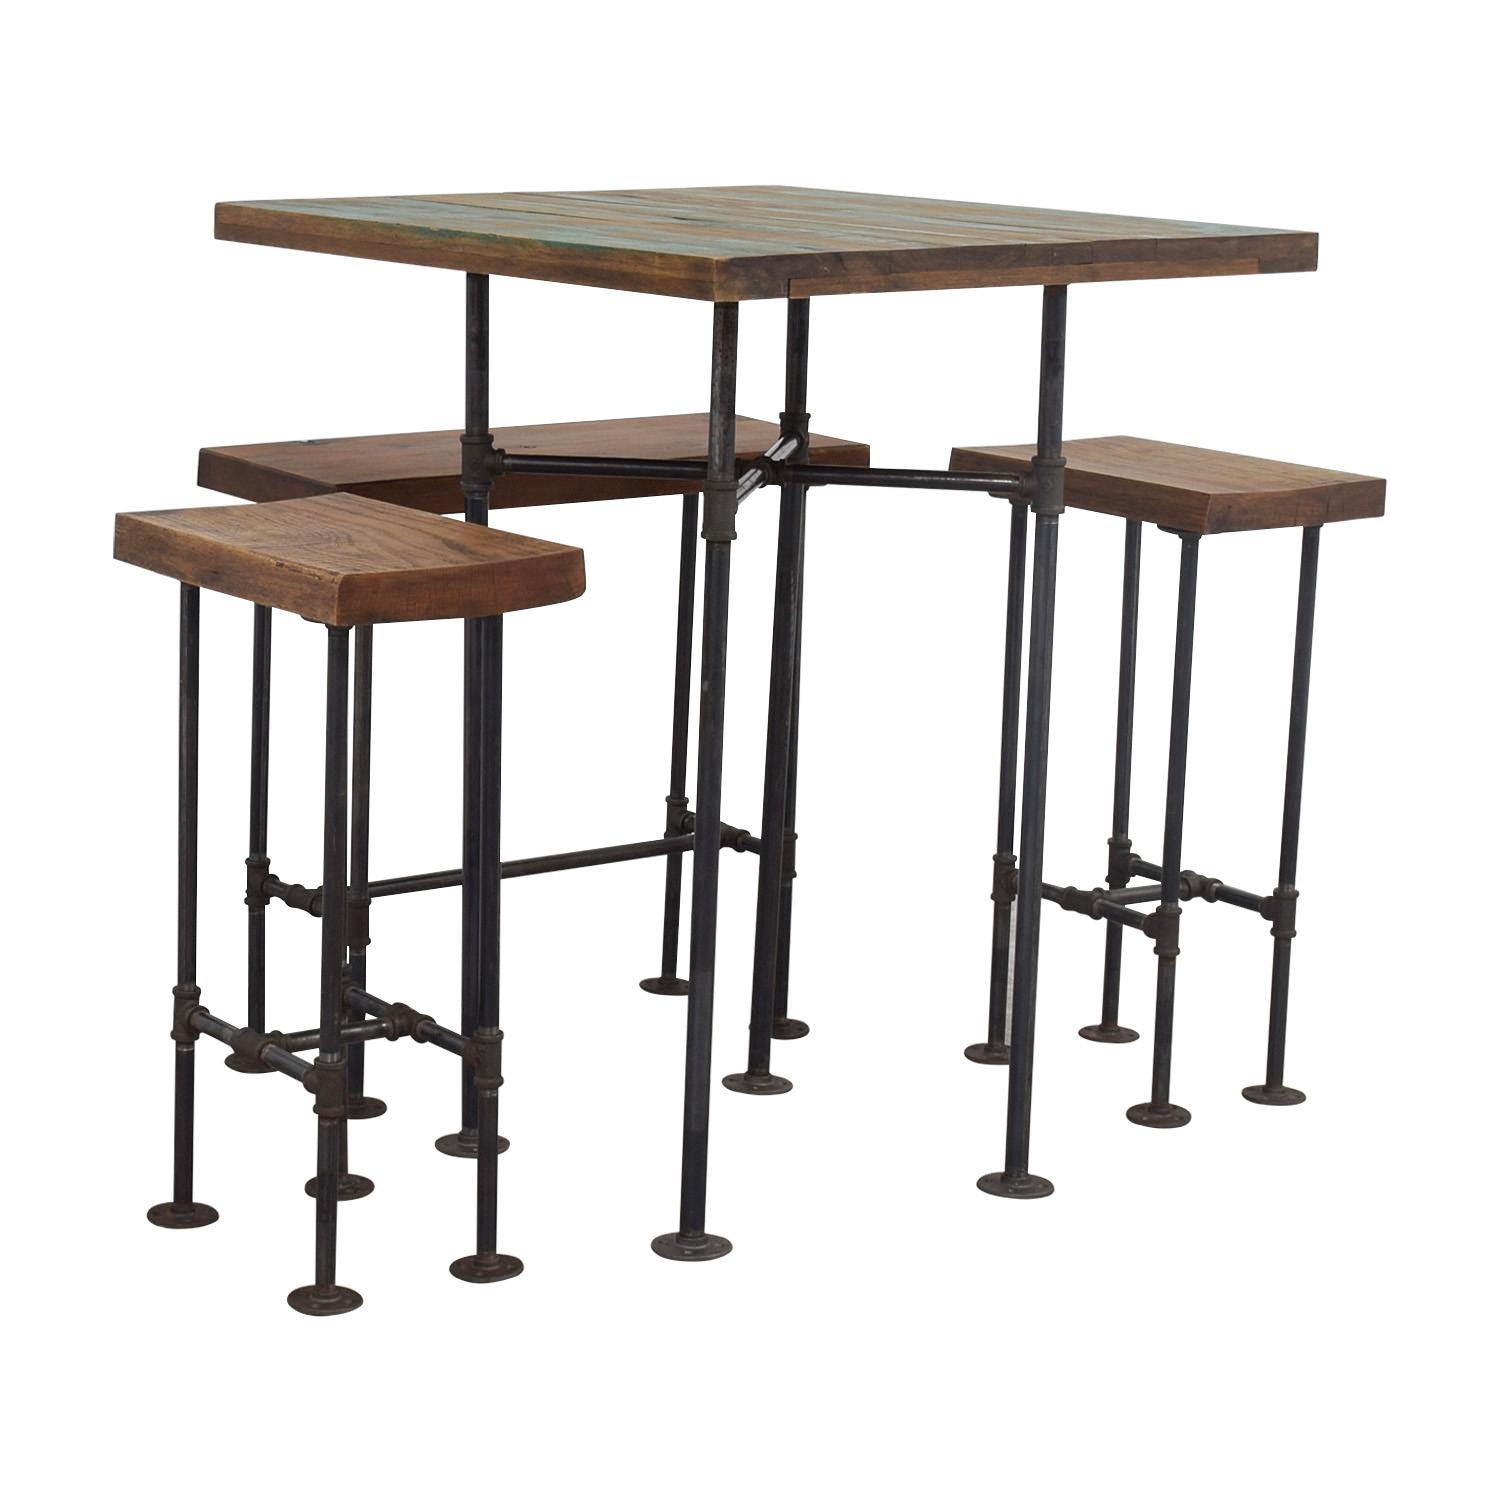 A Little of India Industrial Reclaimed Wood Counter Table and Stools / Tables